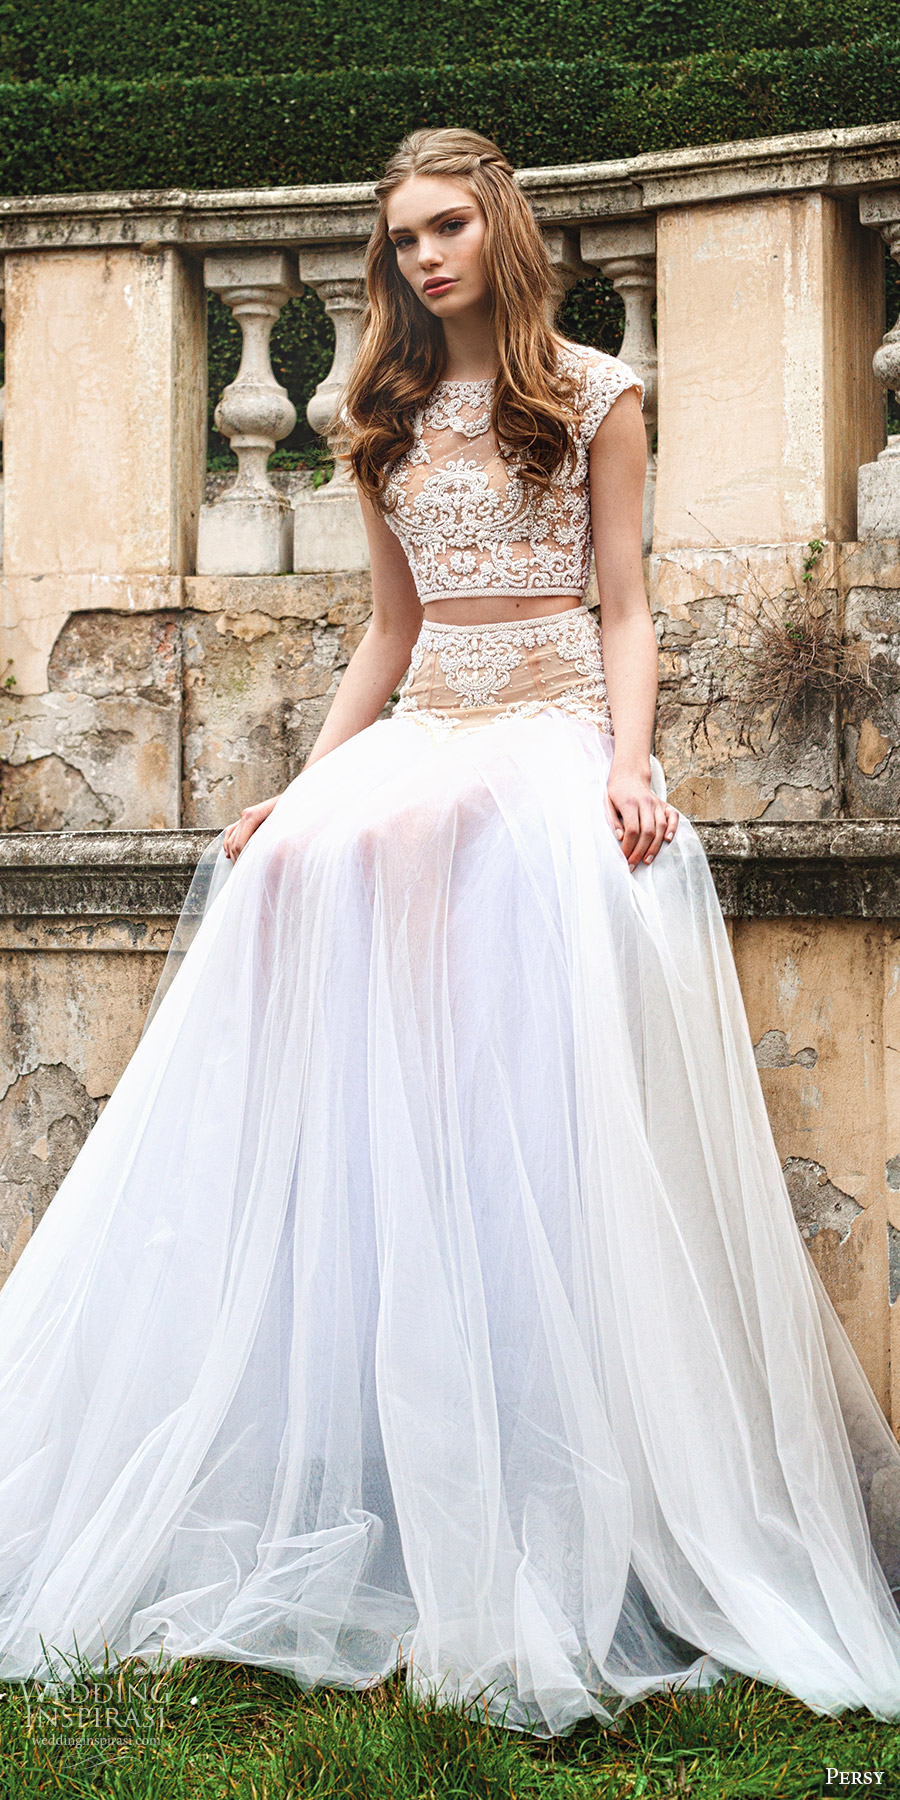 Persy 2016 le jardin wedding dresses exclusive first for Crop top wedding dress